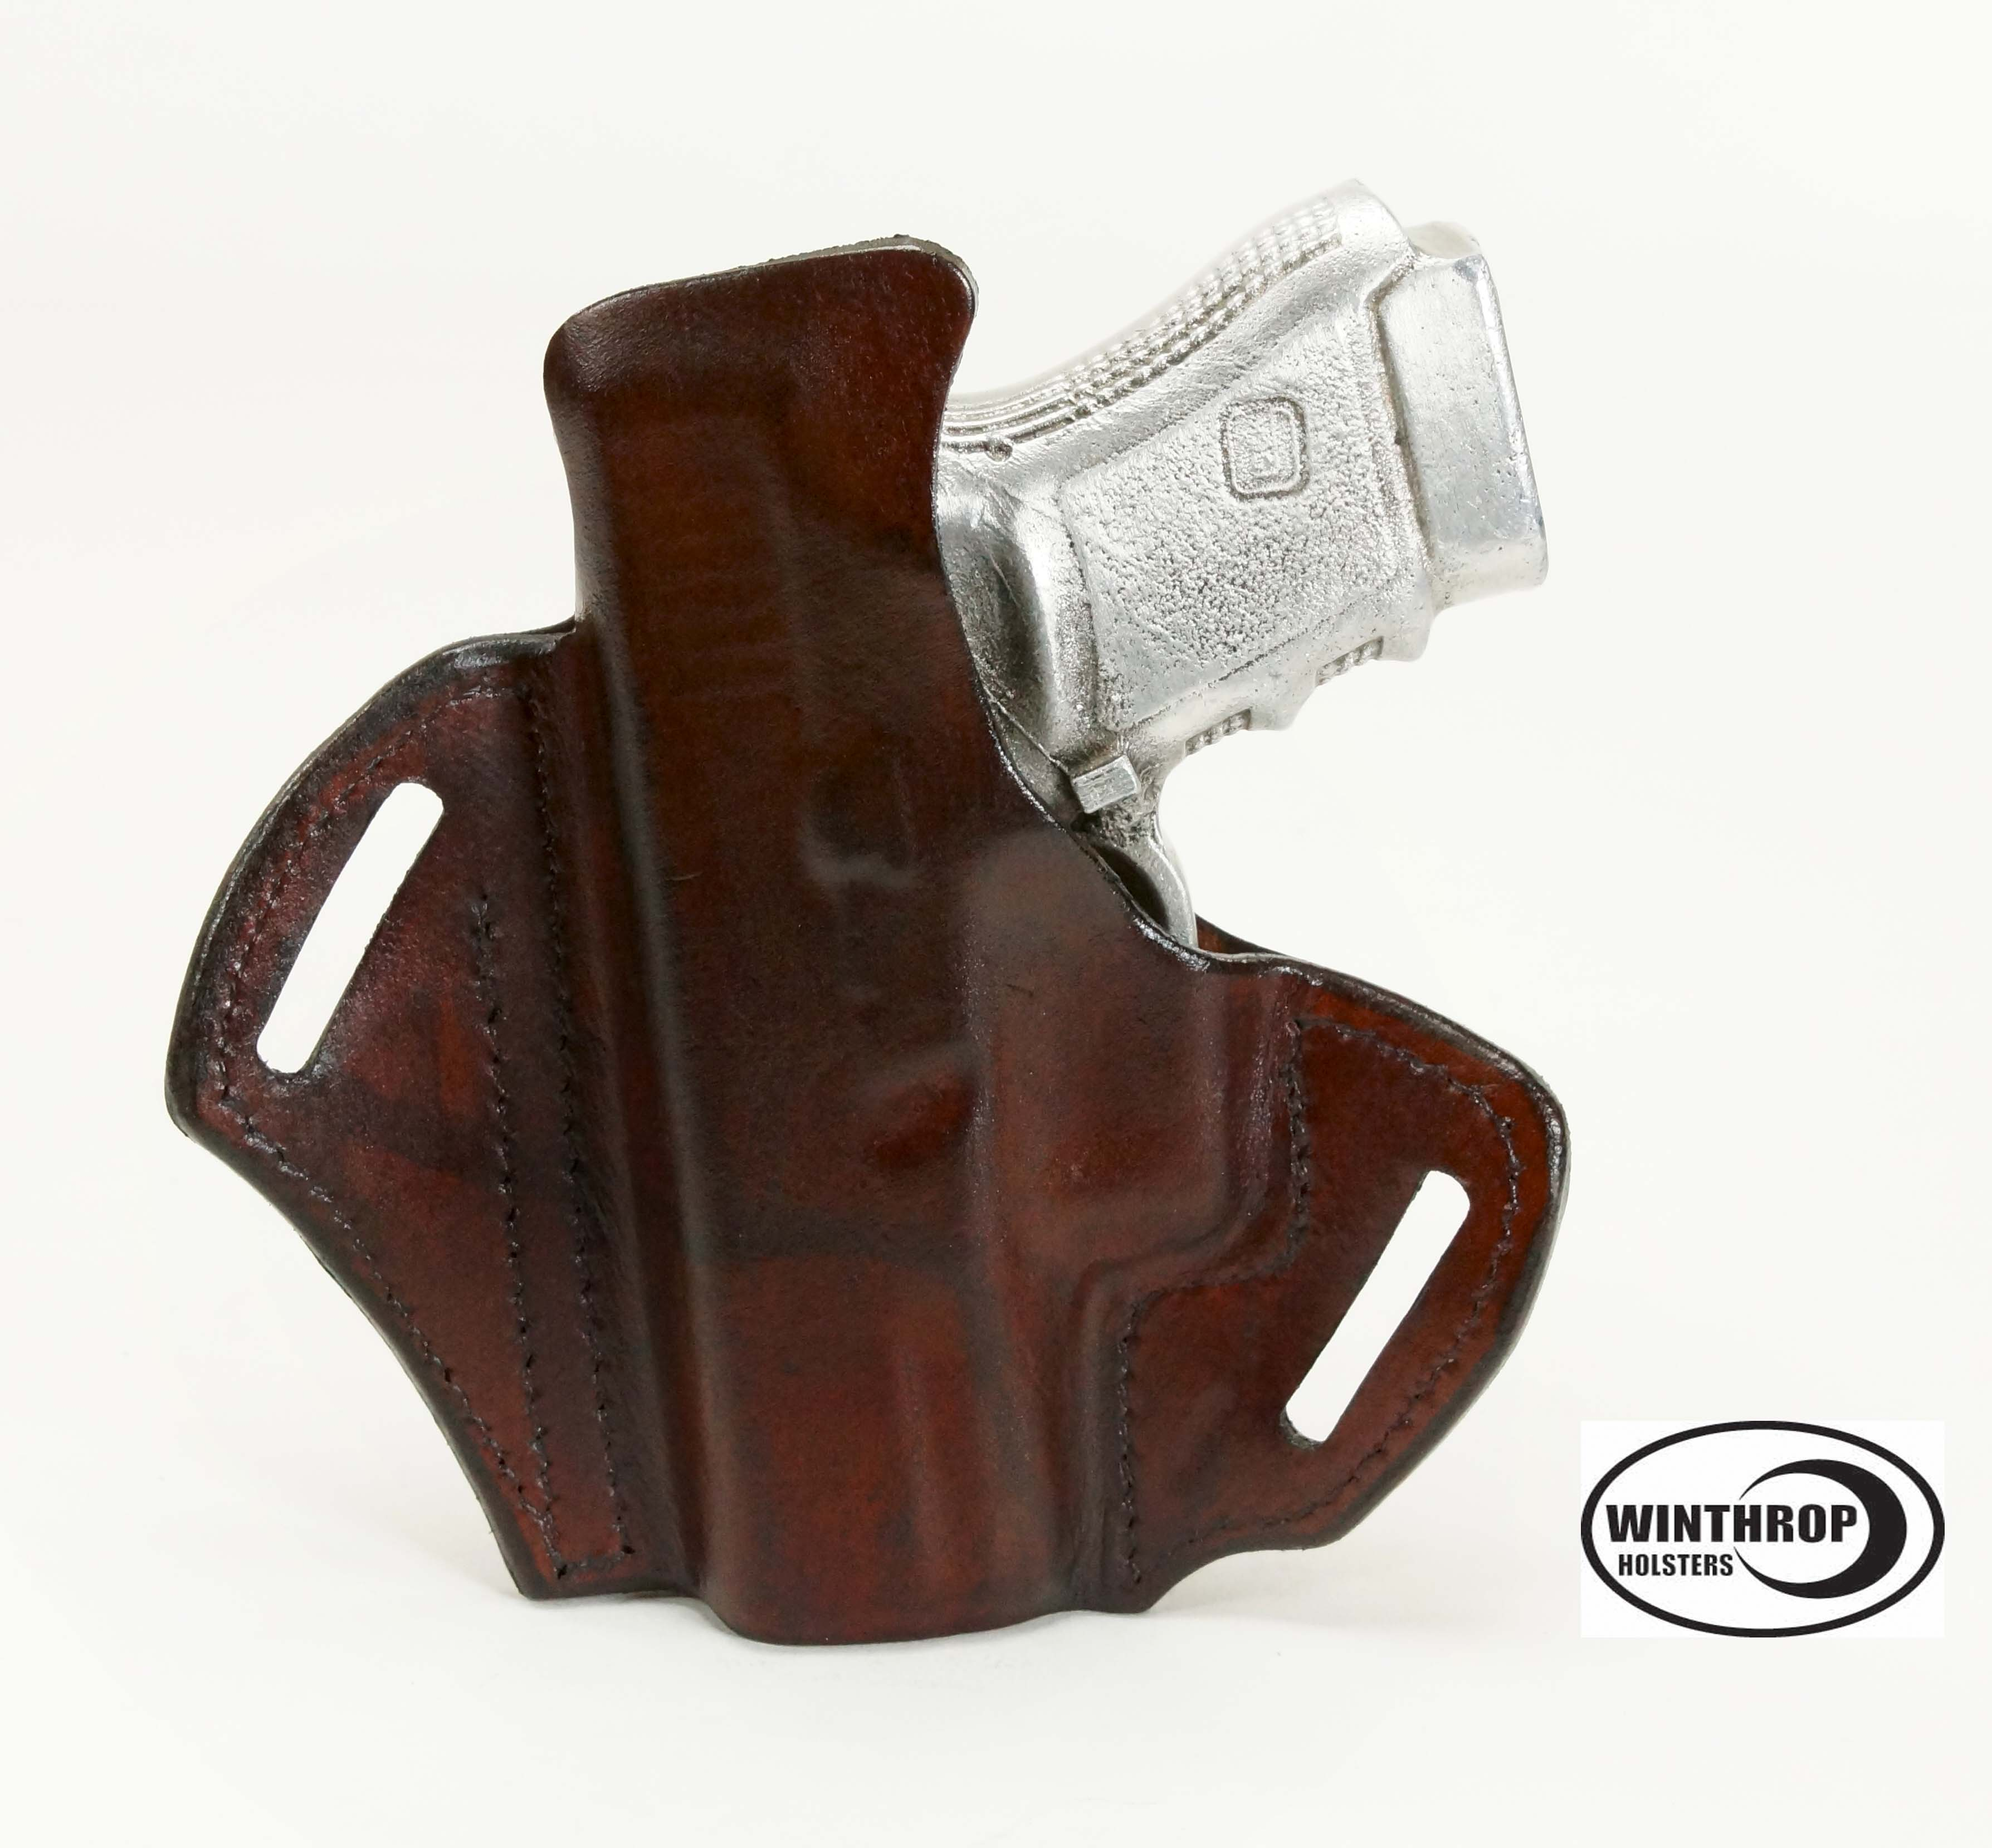 Details about Glock 30 Brown OWB Holster w  BodyshieldGlock 30 Holster Leather